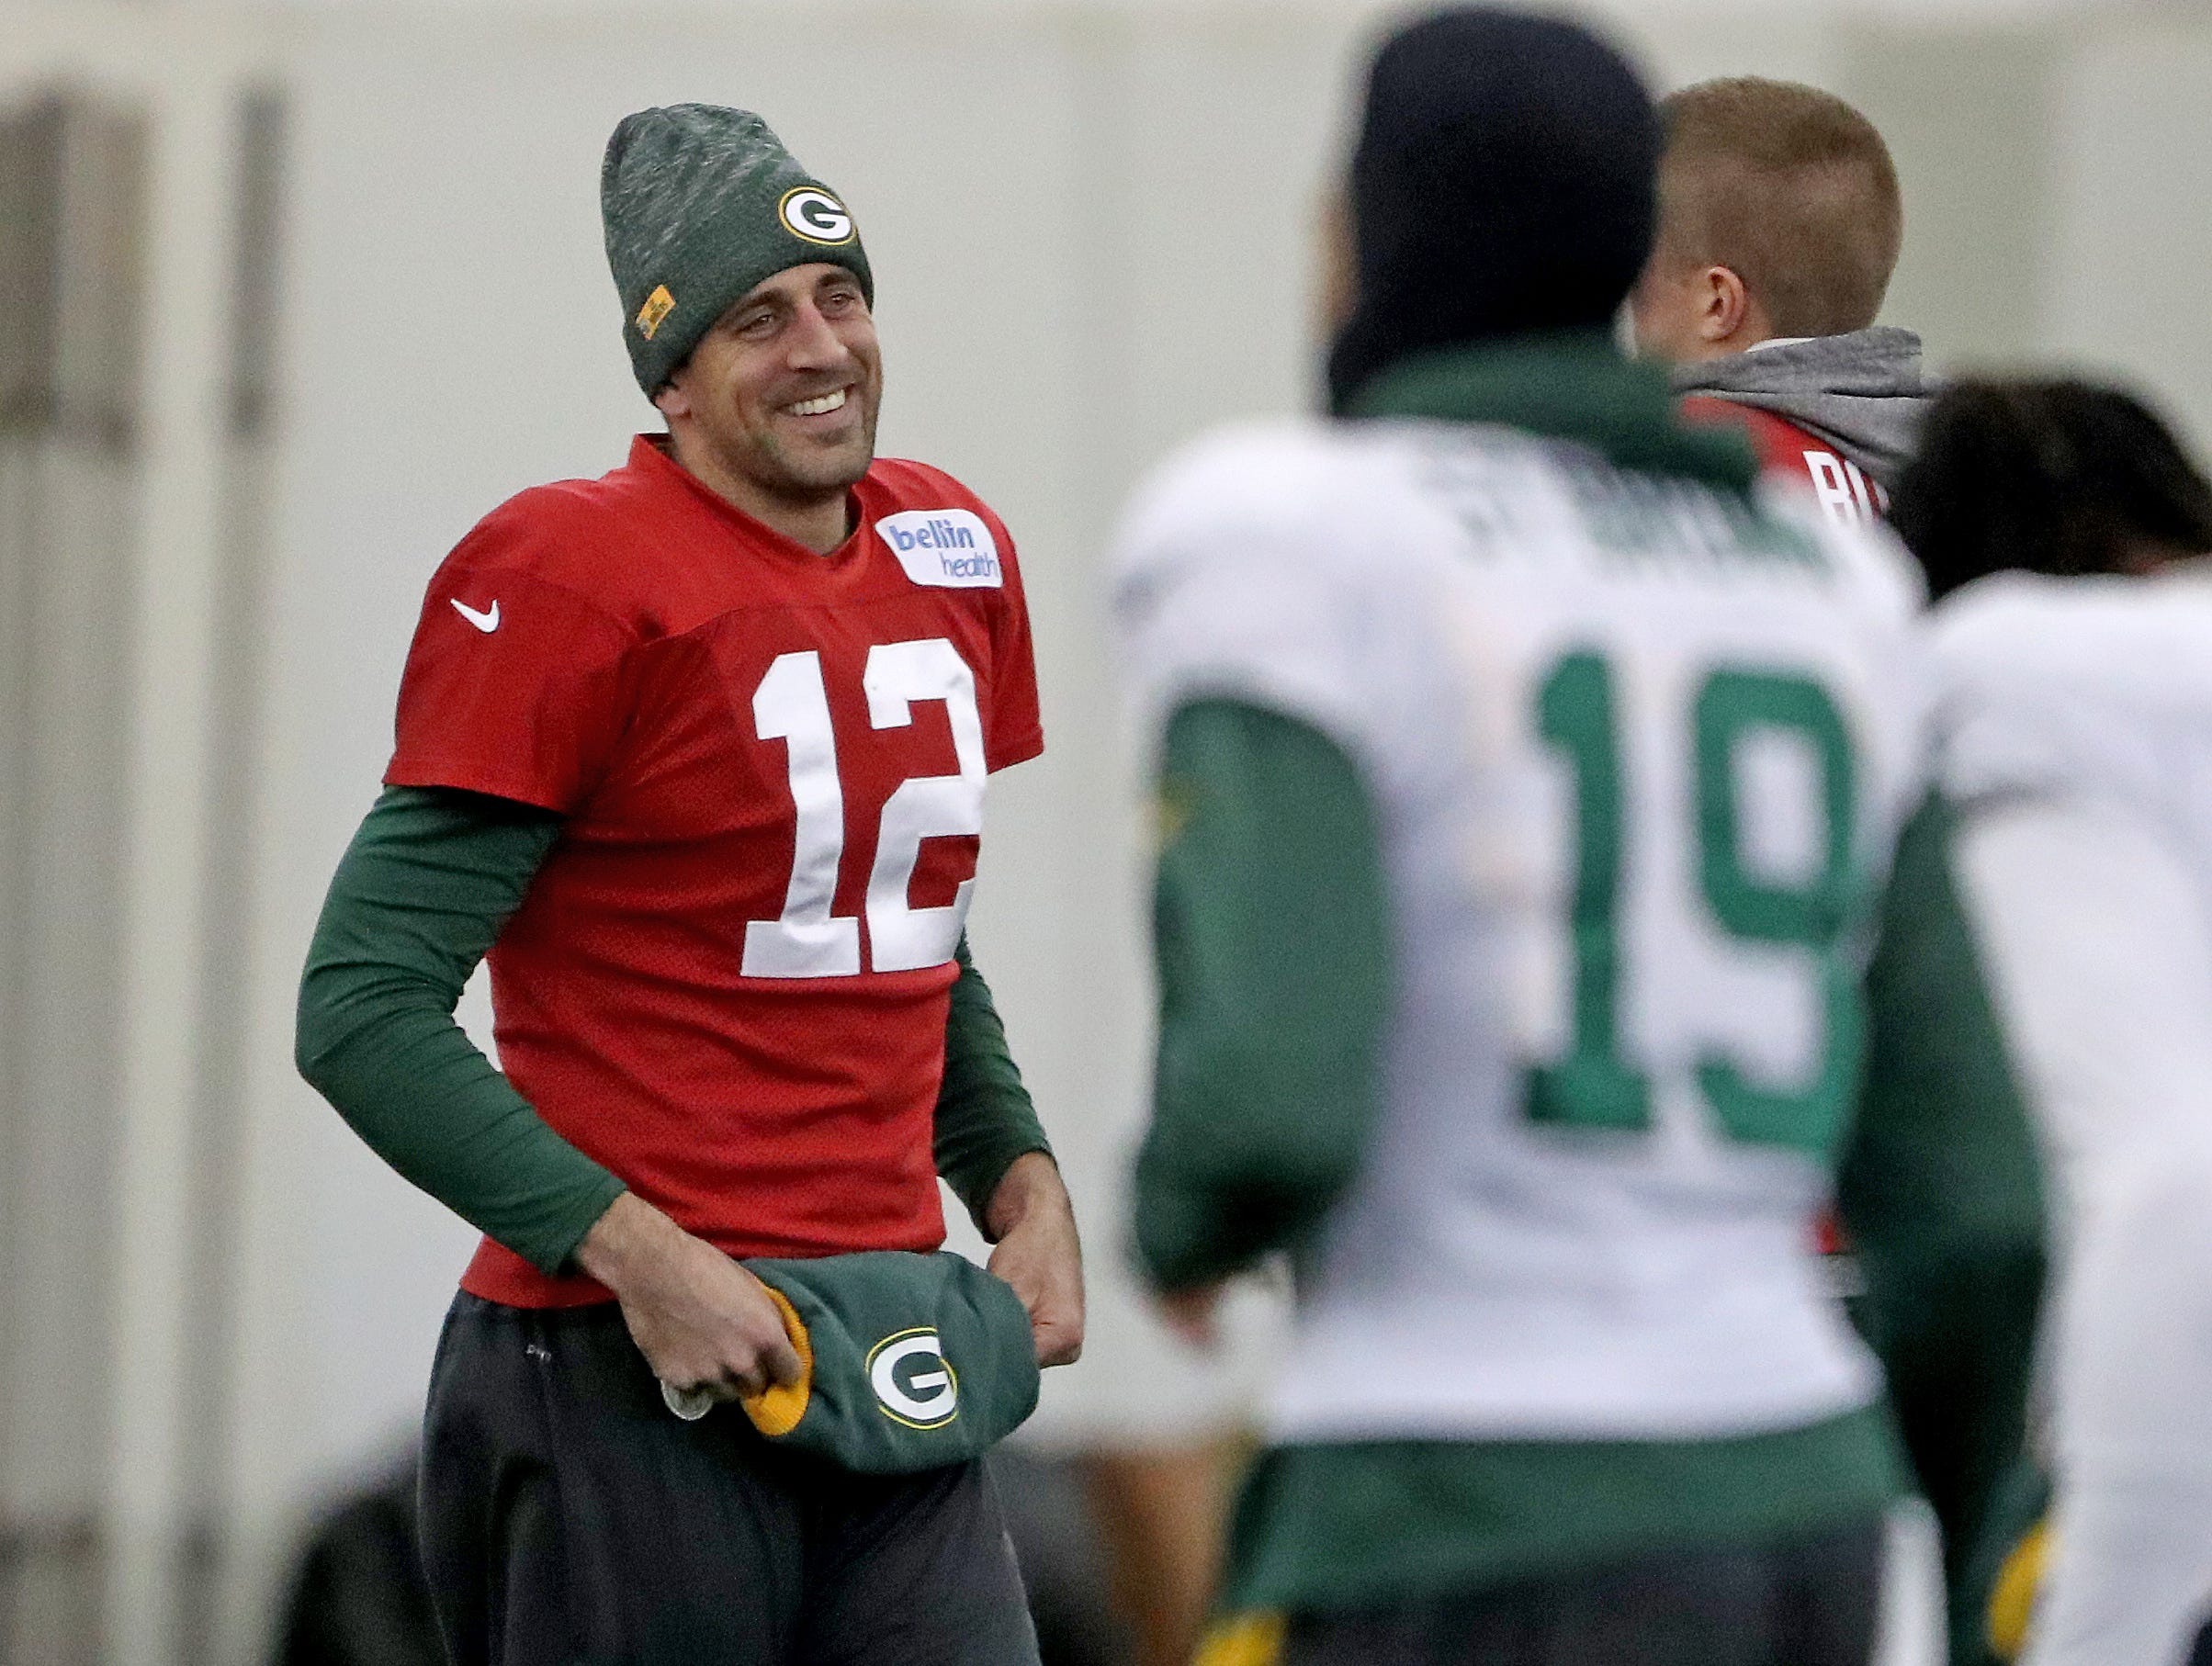 Green Bay Packers quarterback Aaron Rodgers (12) smiles during warmups at practice Thursday, December 6, 2018 inside the Don Hutson Center in Ashwaubenon, WIs.